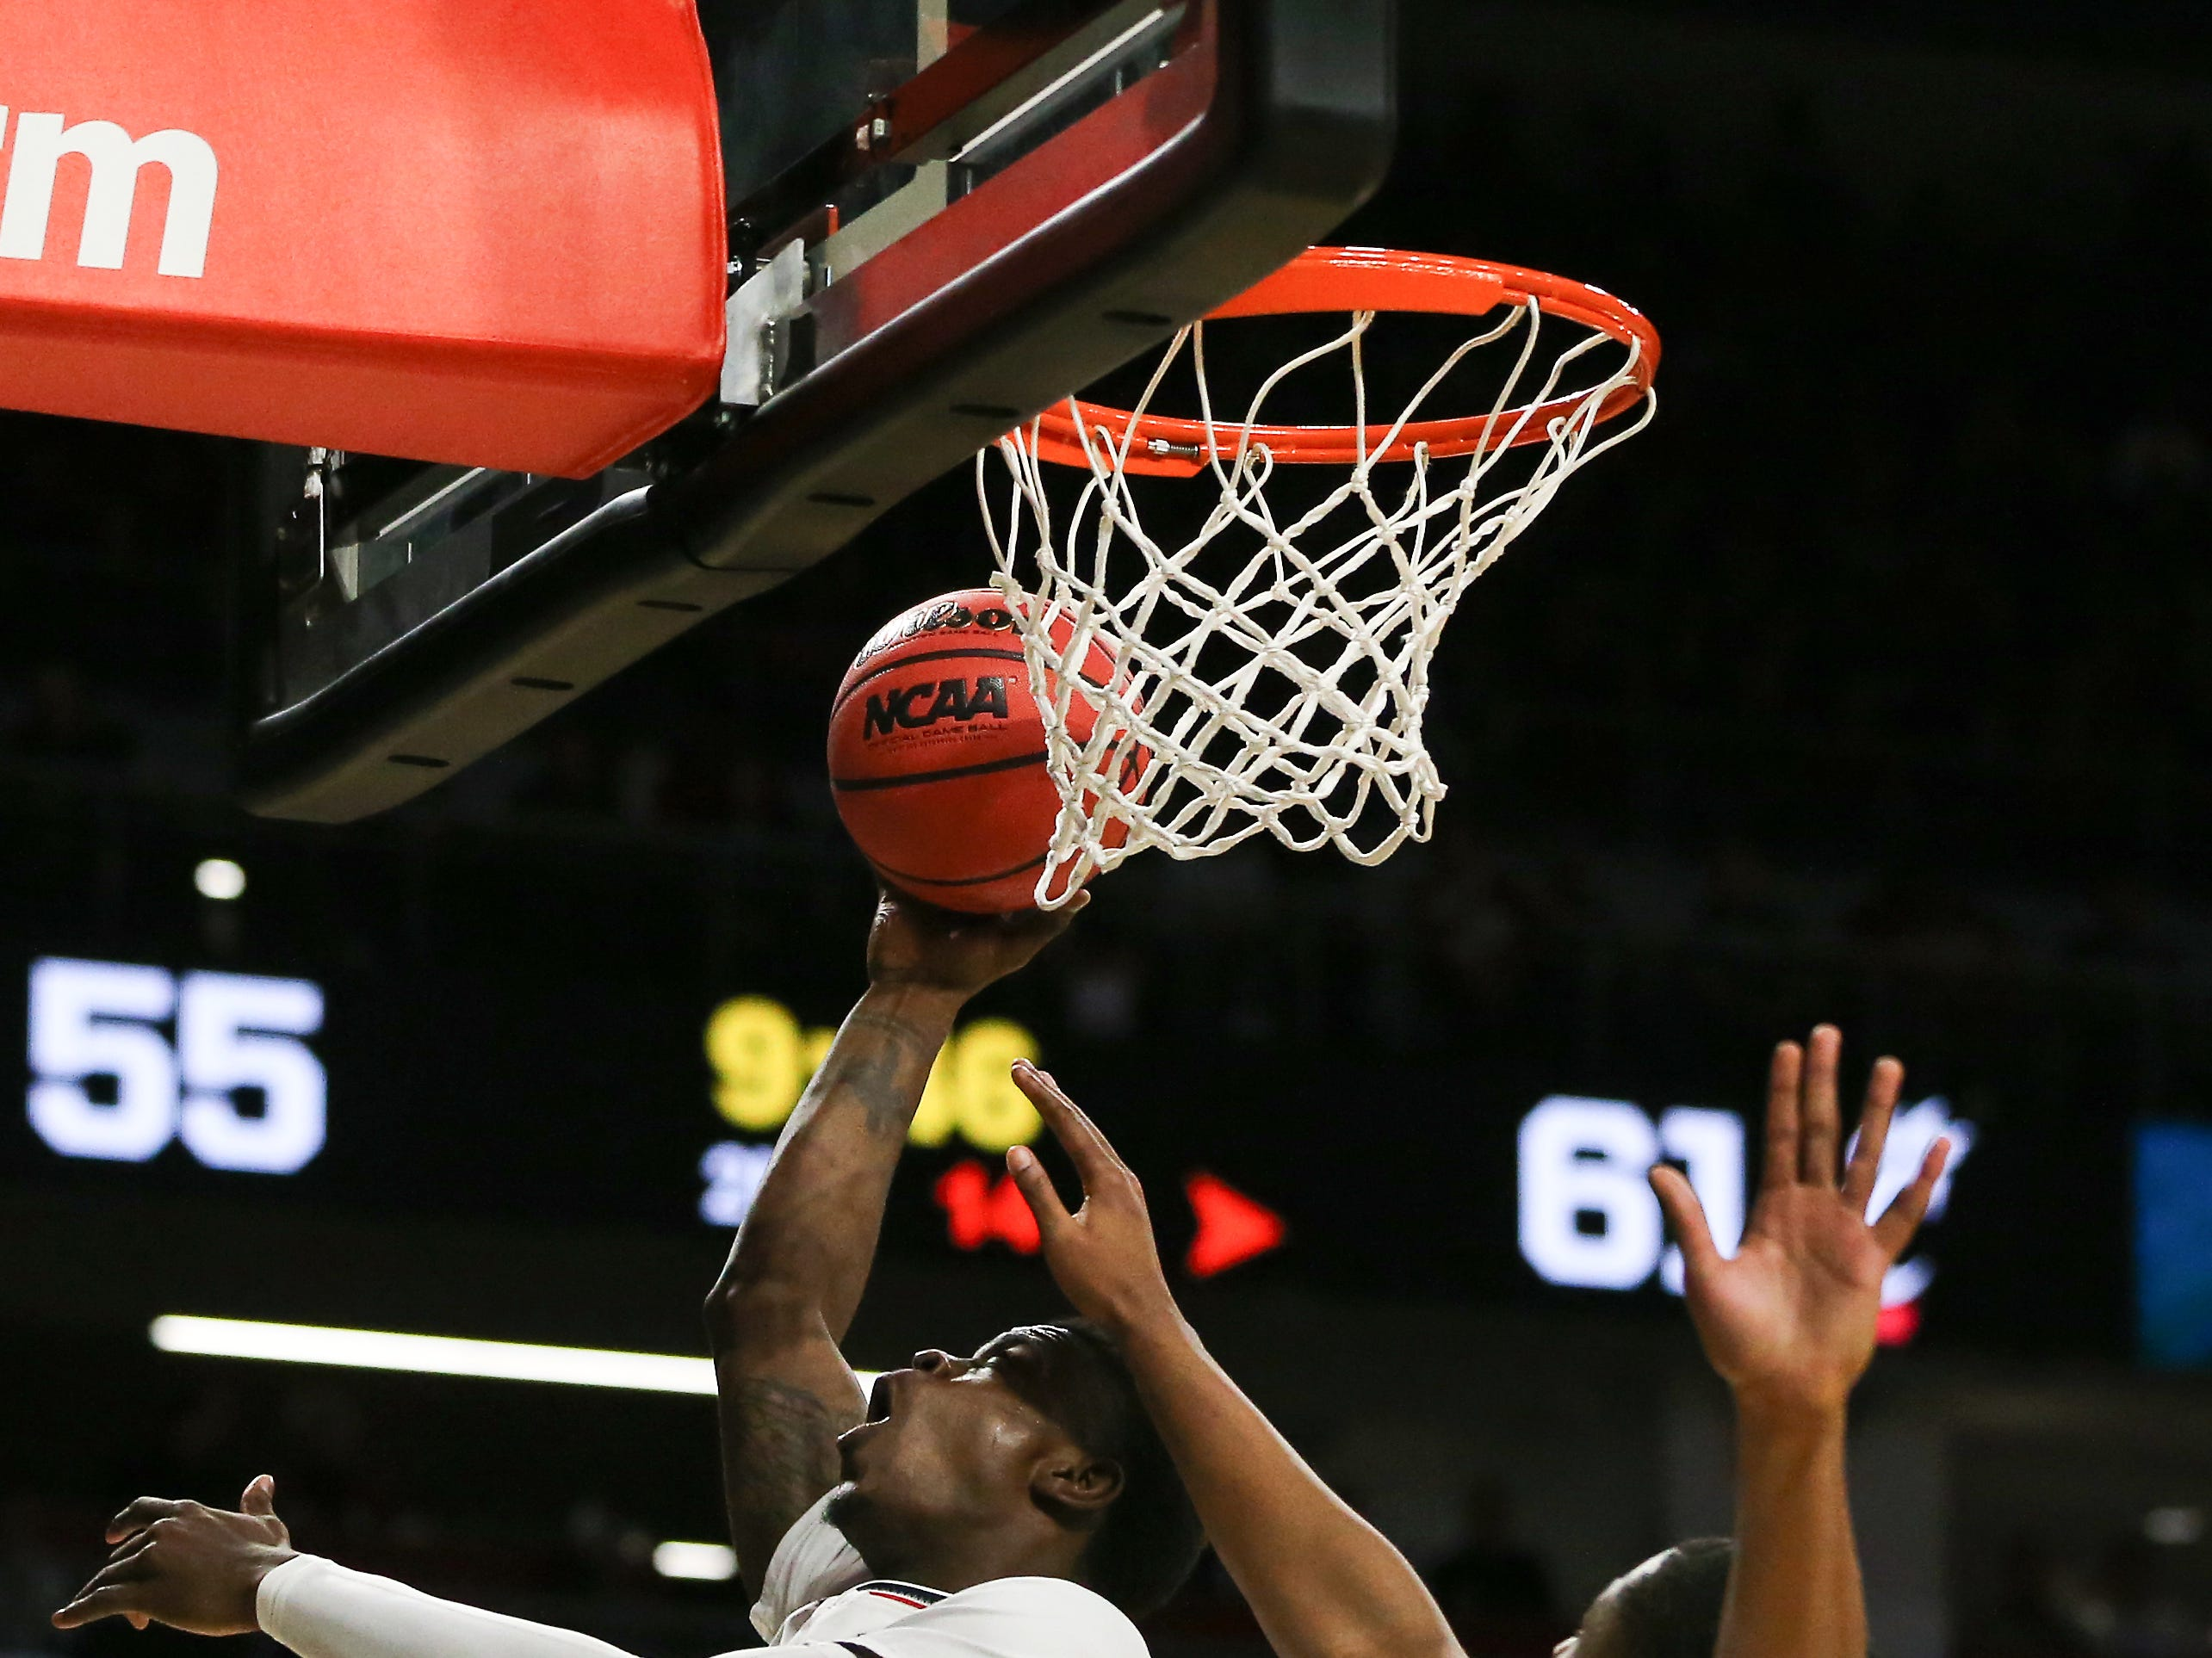 Cincinnati Bearcats forward Tre Scott (13) finishes at the basket in the second half of an NCAA college basketball game against the South Florida Bulls Tuesday, Jan. 15, 2019, at Fifth Third Arena in Cincinnati. Cincinnati won 82-74.